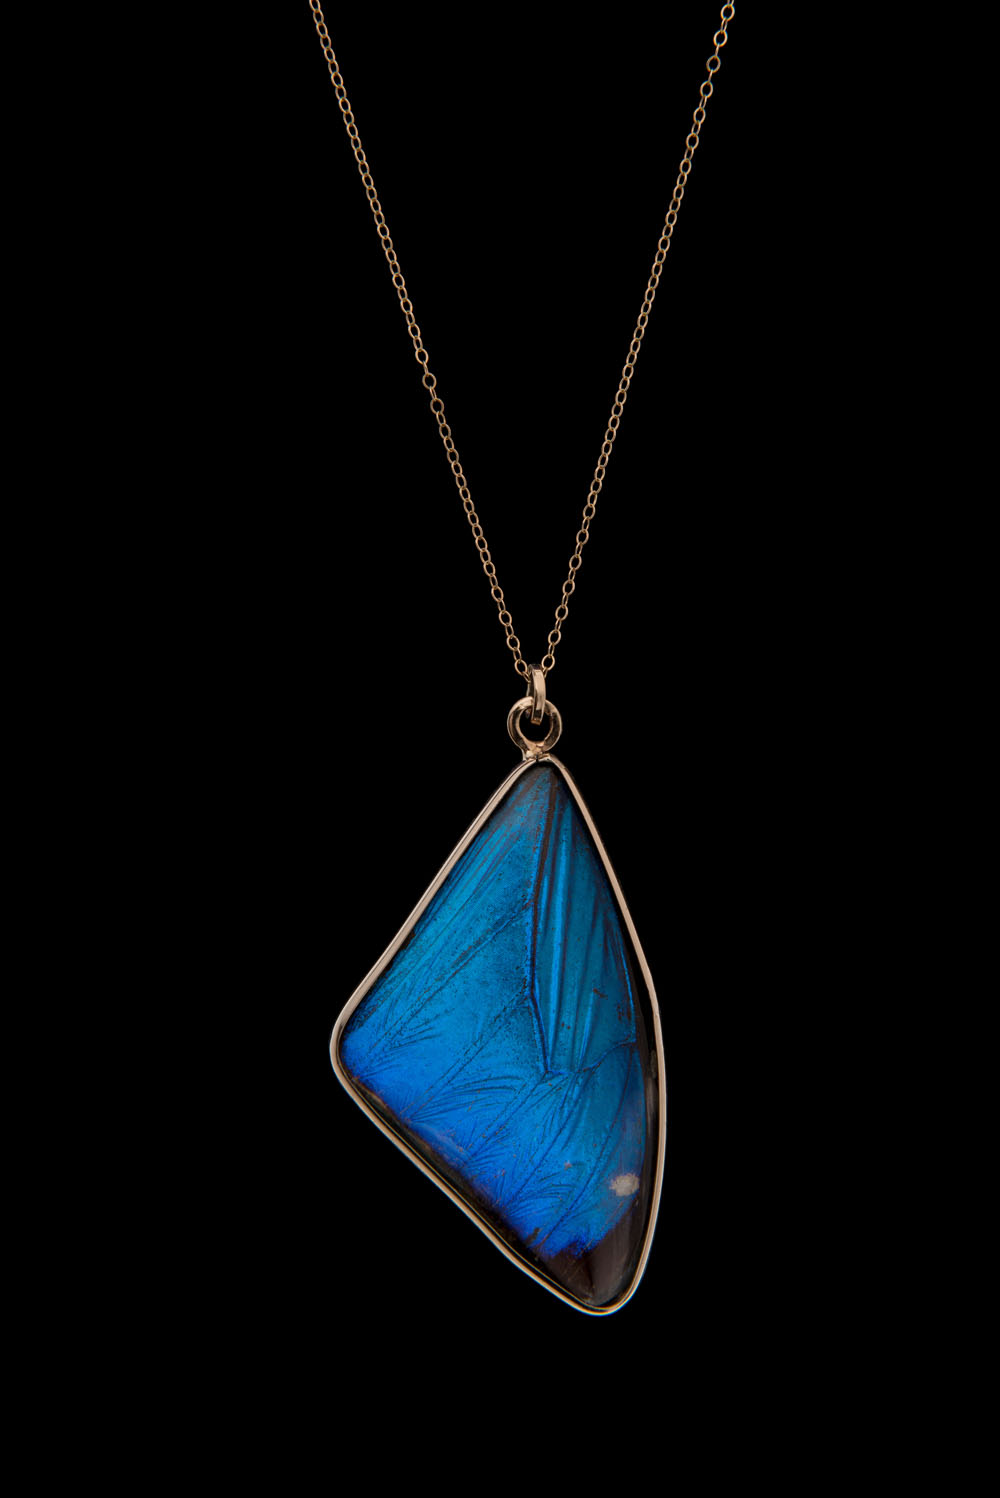 Blue Morpho Pendant Medium Blue Morpho Jewelry